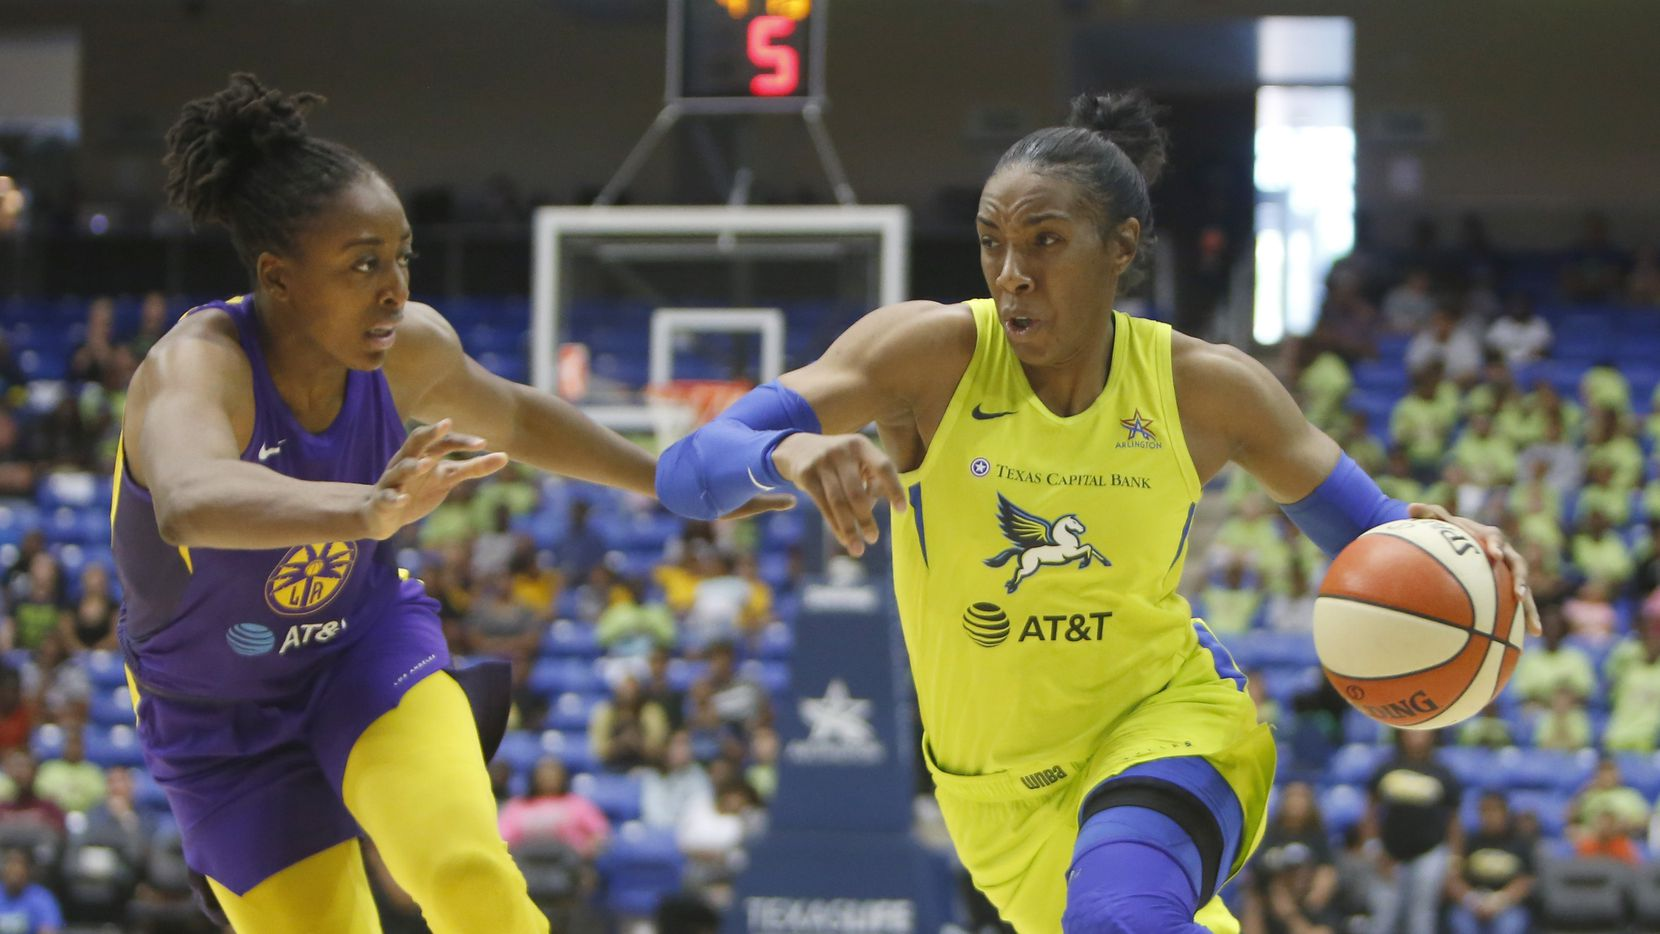 Dallas Wings forward Kayla Thornton (6) drives to the basket past the defense of Los Angeles Sparks guard Nneka Ogwumike (30) during first half action. The Wings defeated the Sparks, 74-62. The two teams played their WNBA game at College Park Center in Arlington on July 9, 2019.